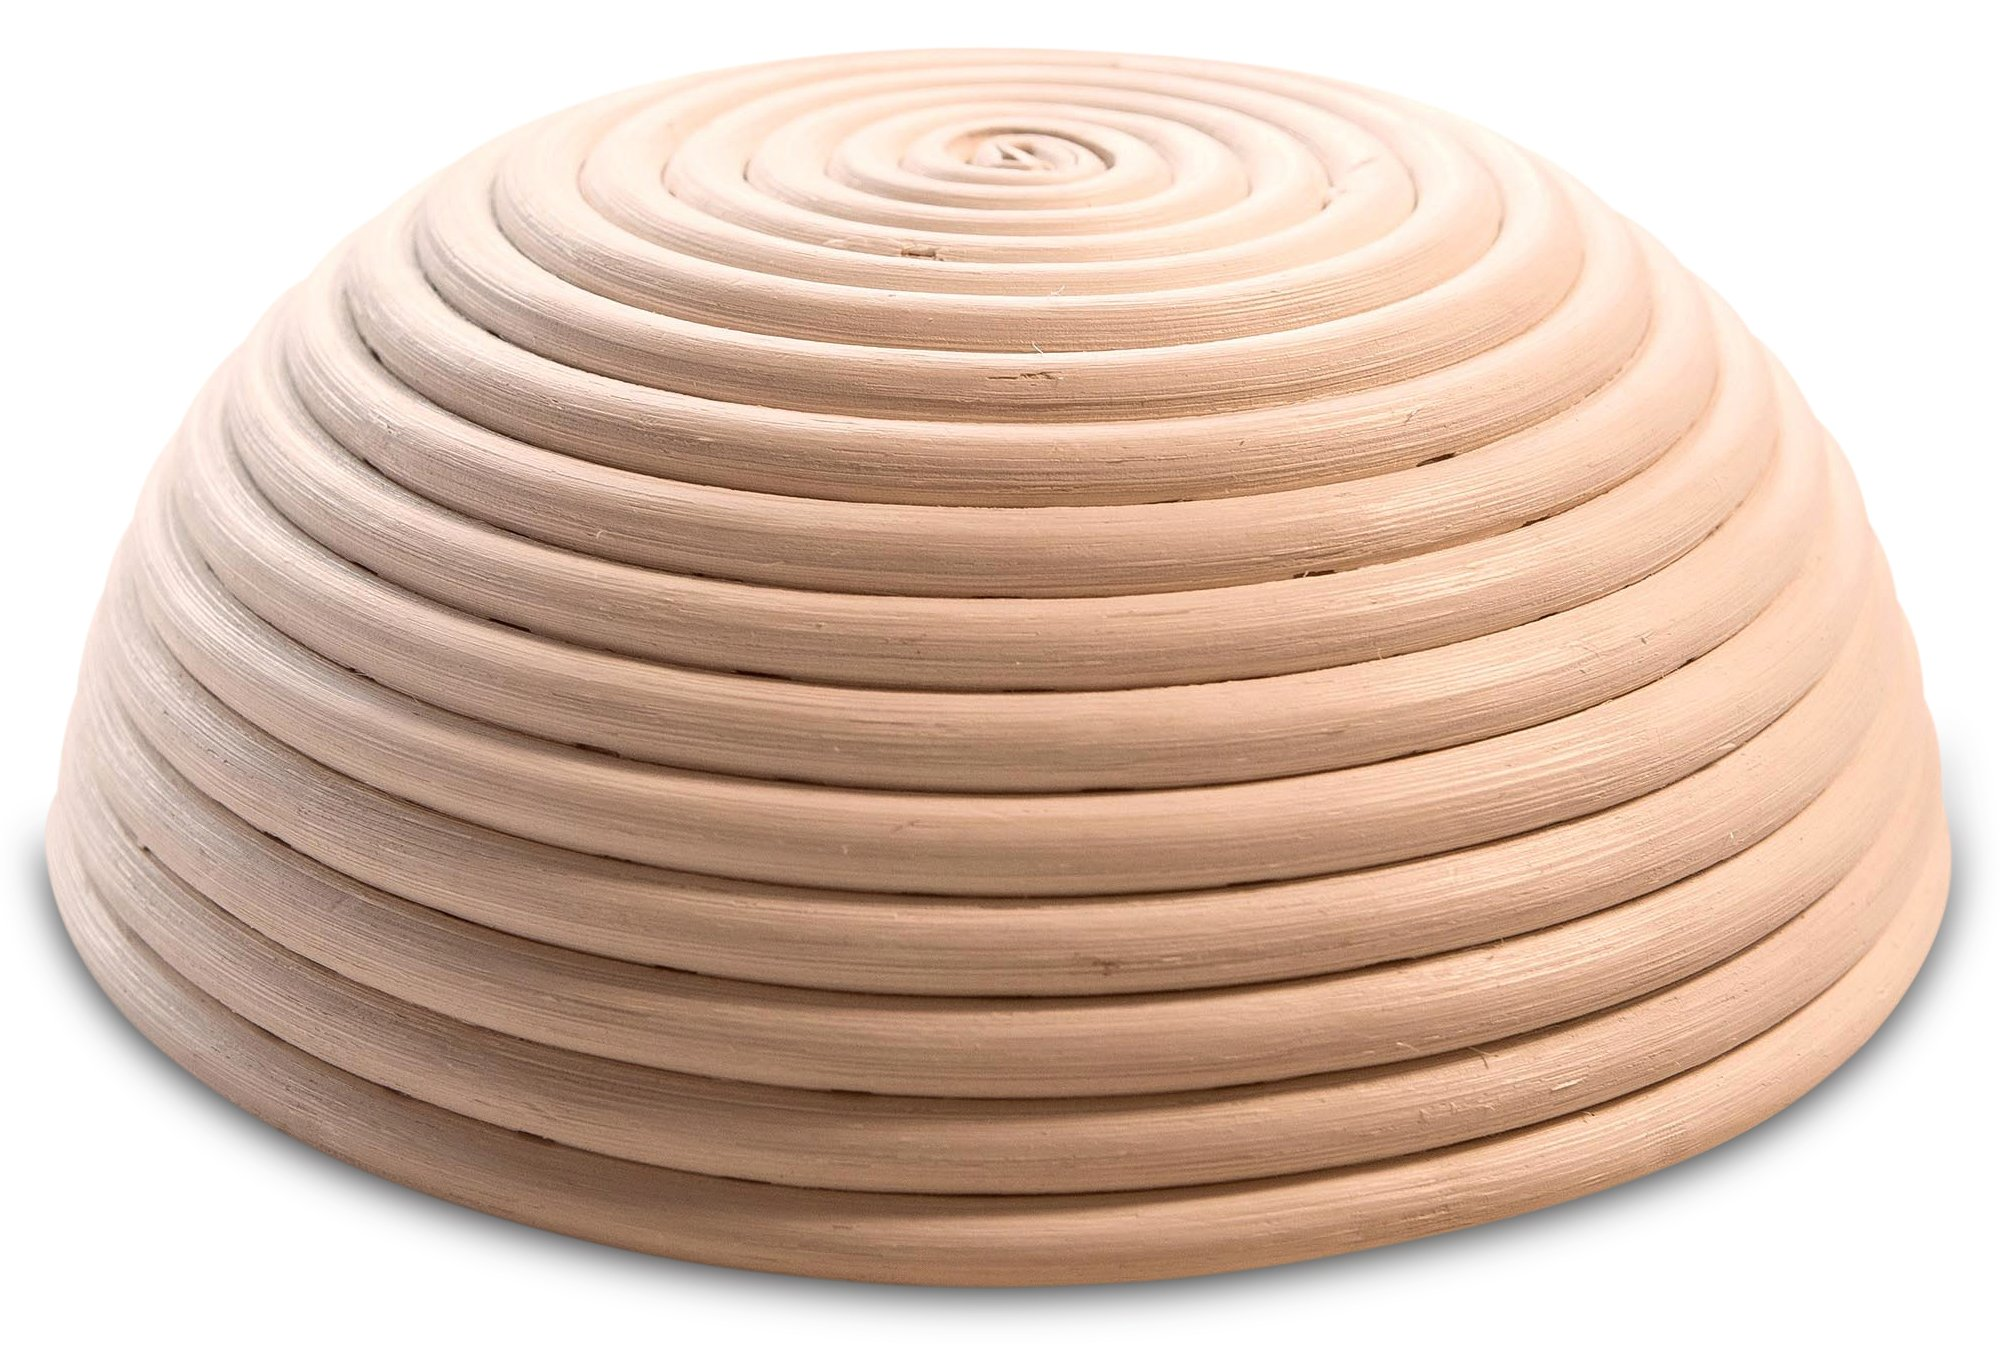 9'' Inch Round Banneton Proofing Basket for Artisan Bread And Dough. E-Book Included With Instructions, Ideas And Recipes. Eco-Friendly Rattan Cane Brotform With Rising Pattern For Artisan Baking. by Pingo Gear (Image #5)